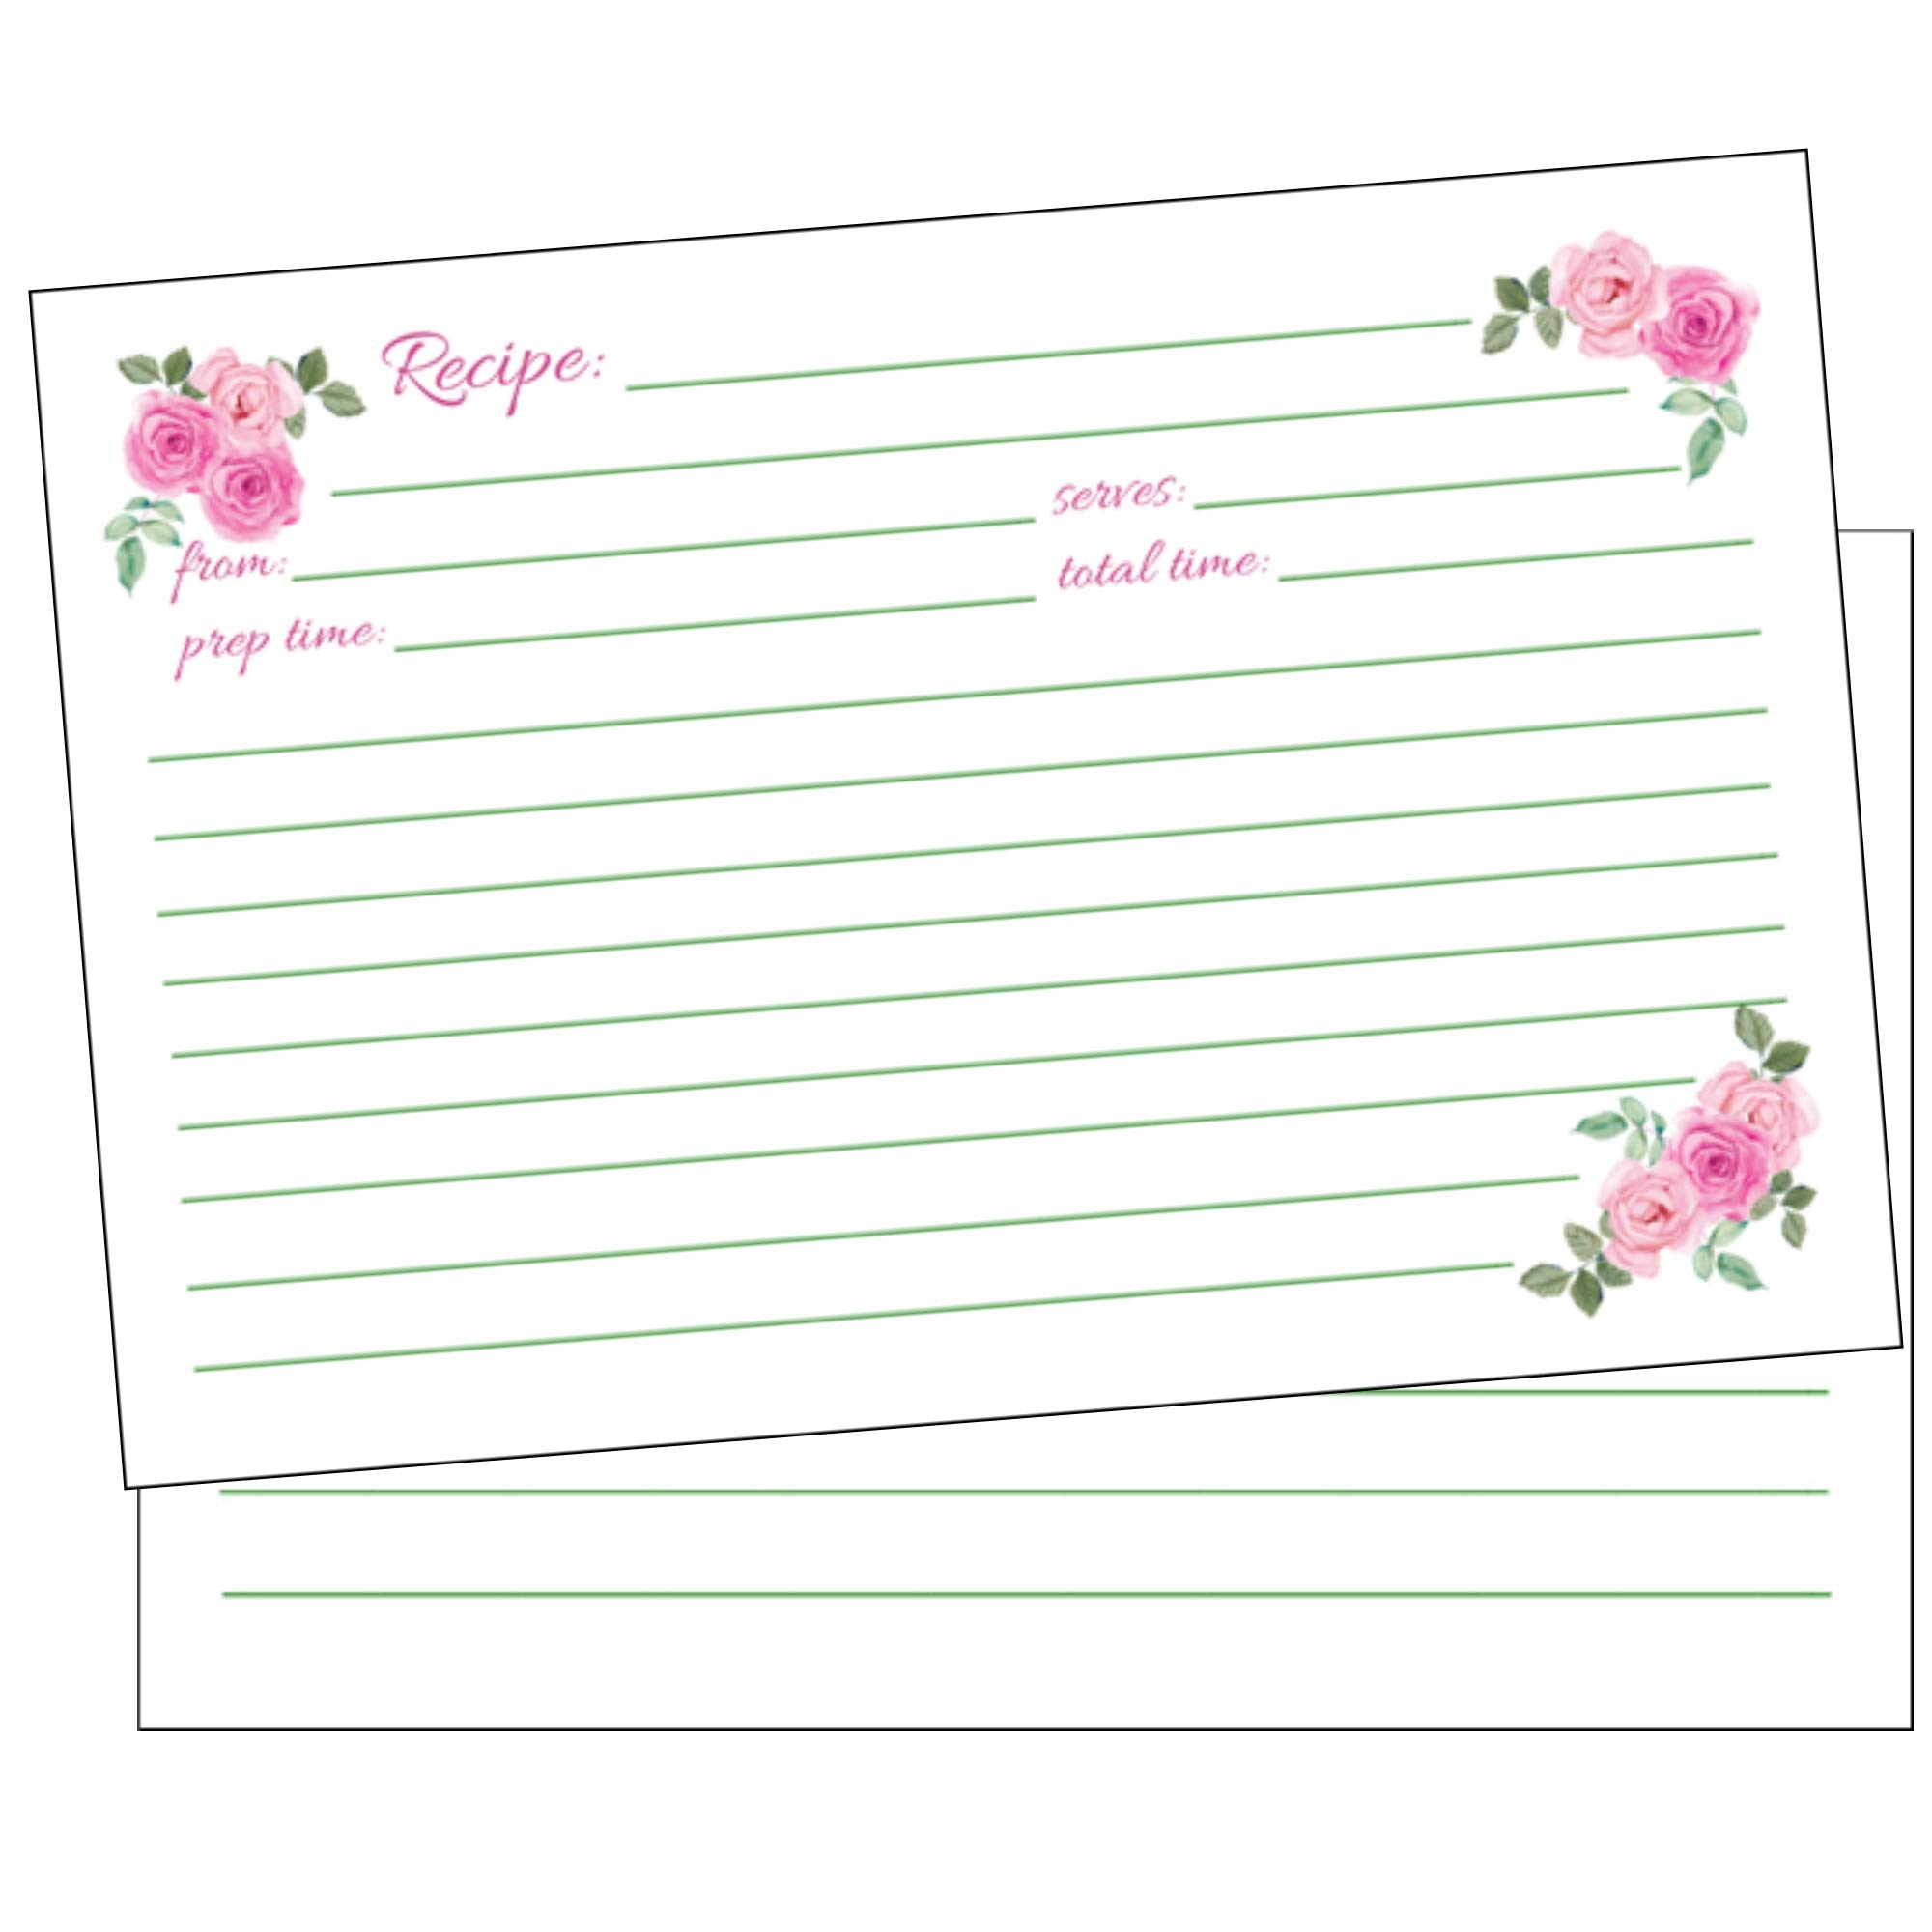 50 Floral Recipe Cards Pink Rose 4x6, Double Sided, Wedding Bridal Shower Card, Blank Plain Printable Recipe Card for Box-Cook Book Index Cards, Cute Pretty Rustic Country Classic Kids Personalized